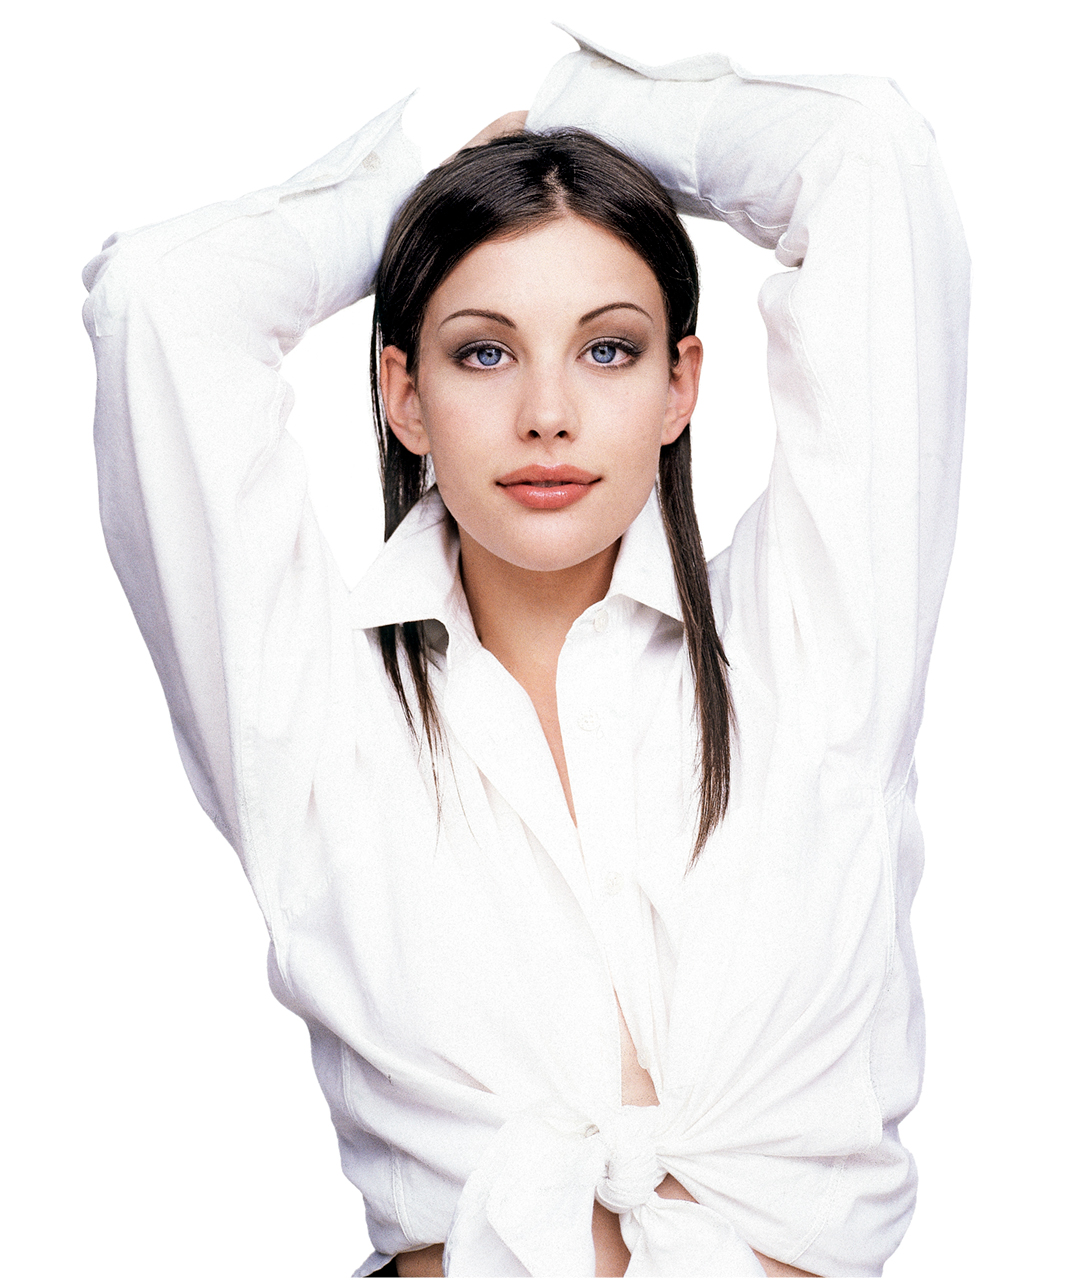 Young-LivTyler-White-Shirt-Arrowsmith.©.jpg